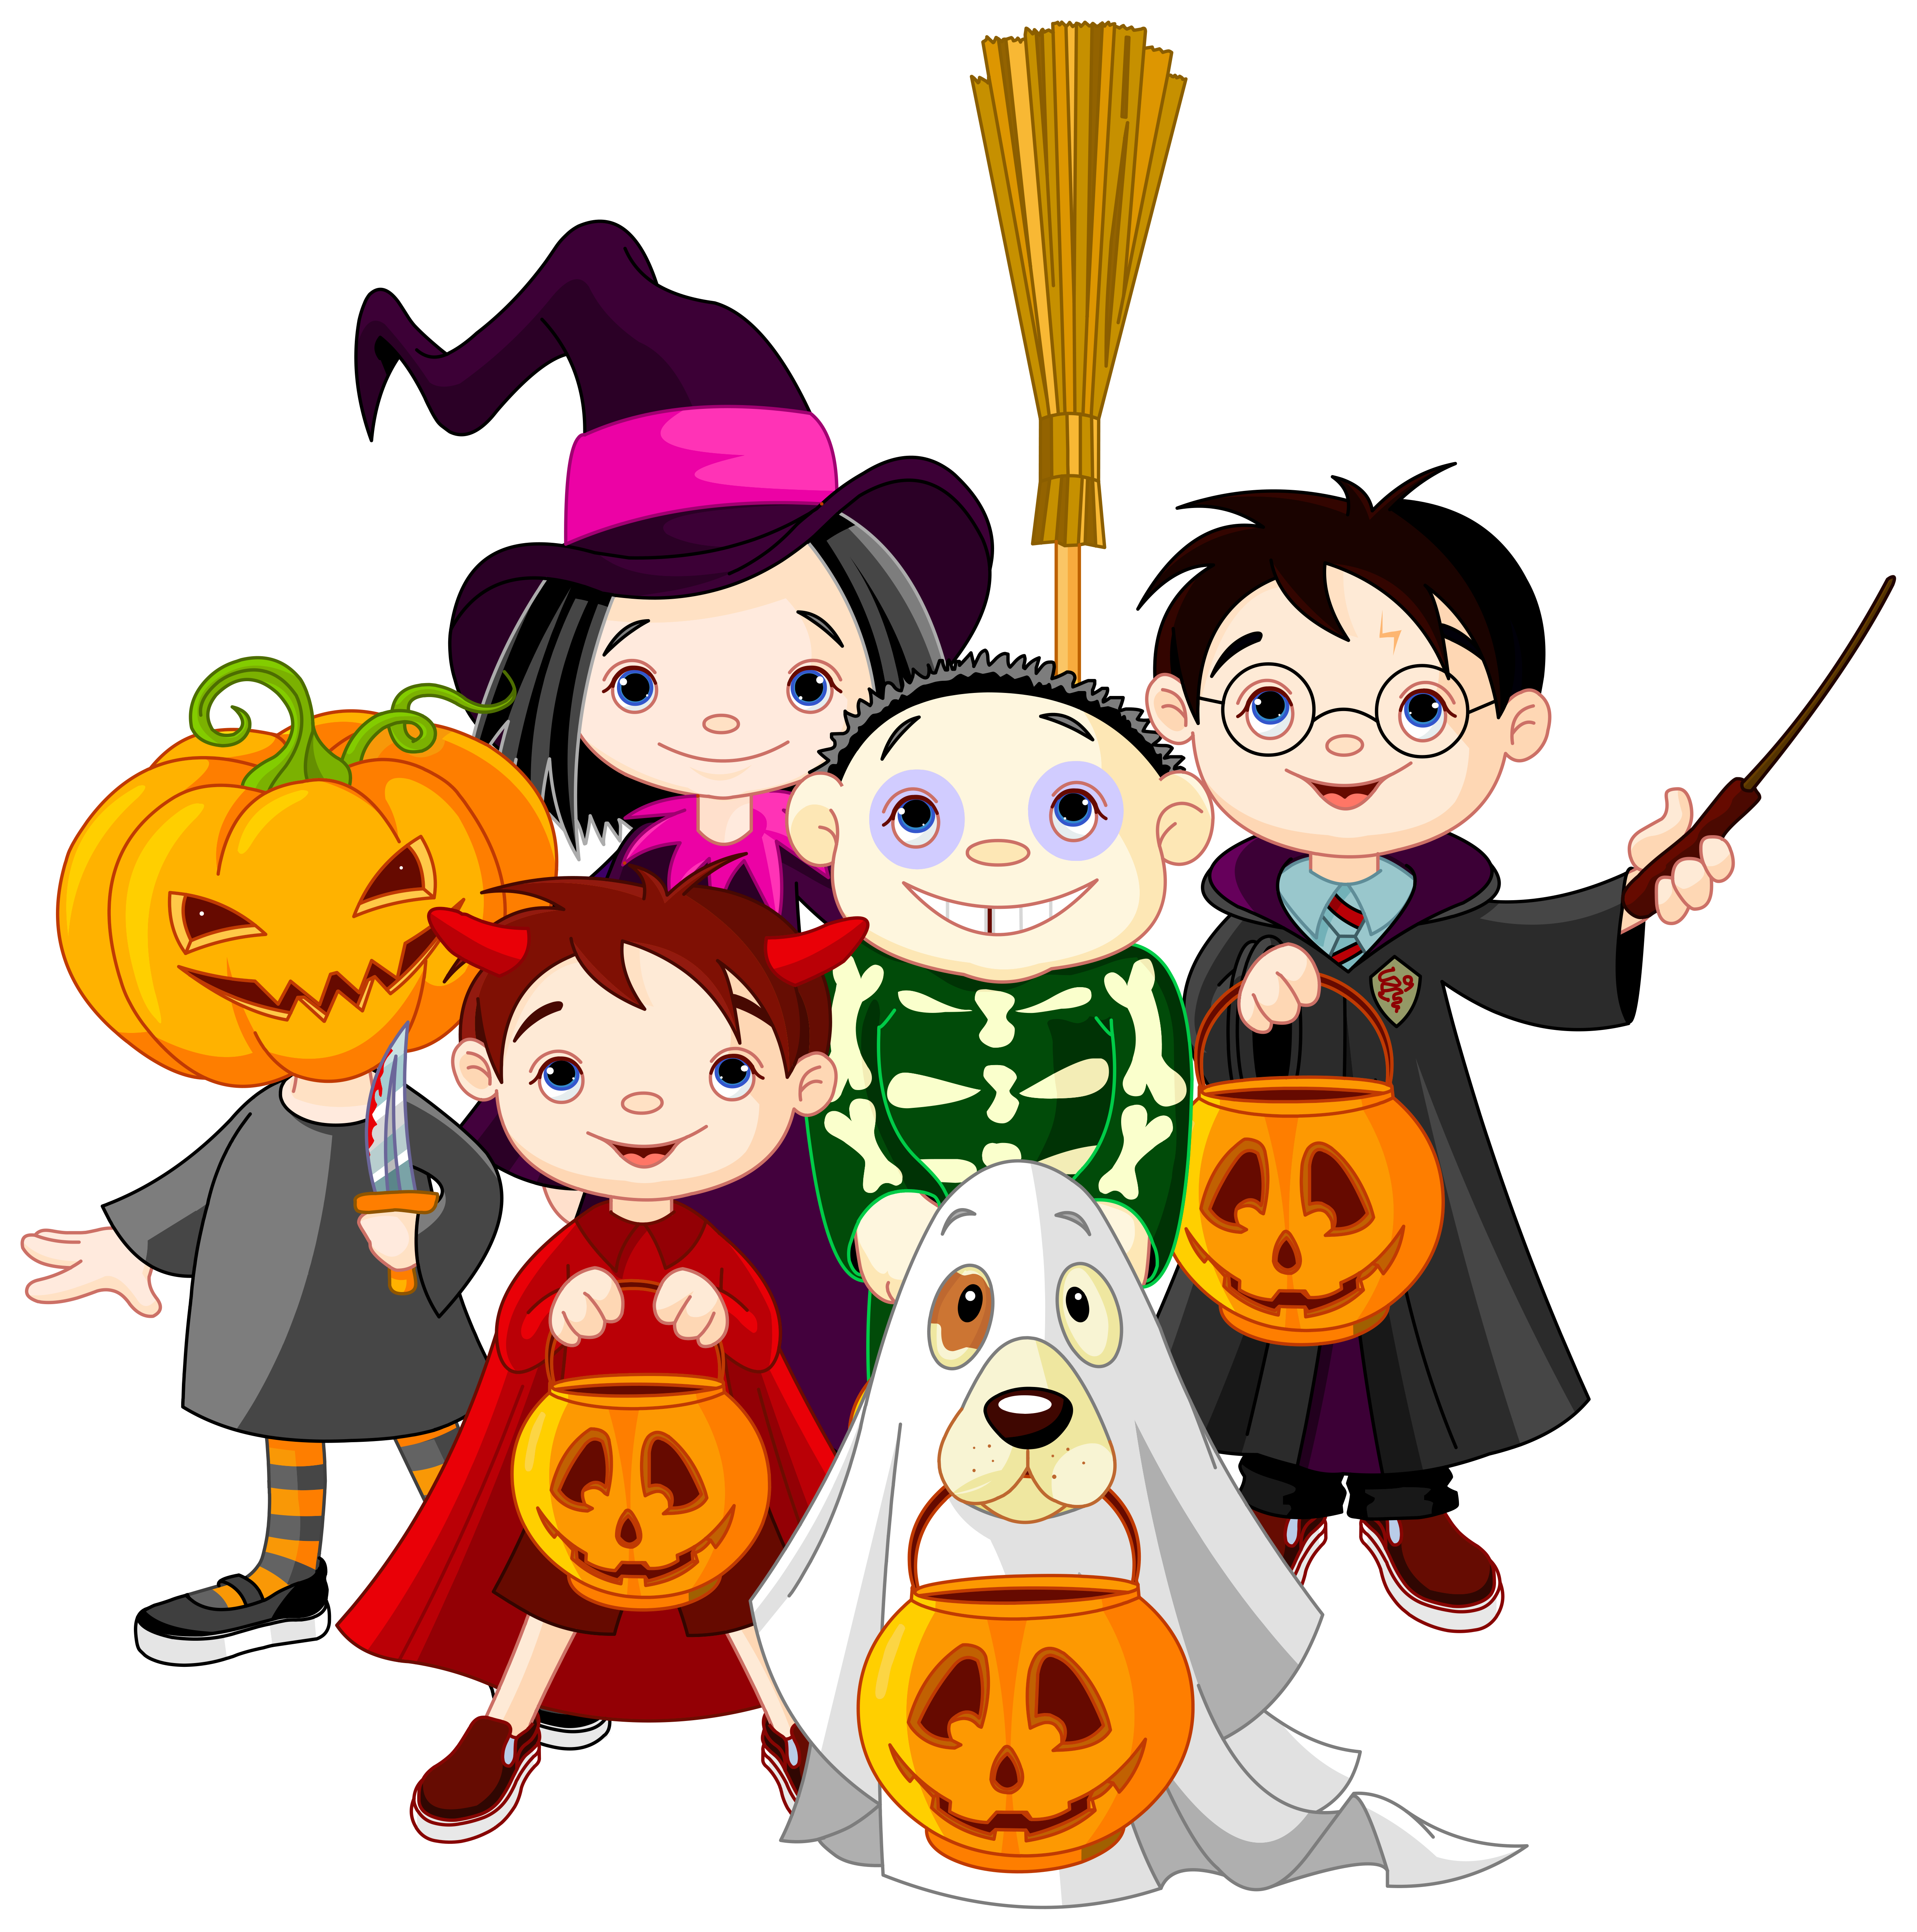 5068x5108 Collection Of Free Children's Halloween Clipart High Quality